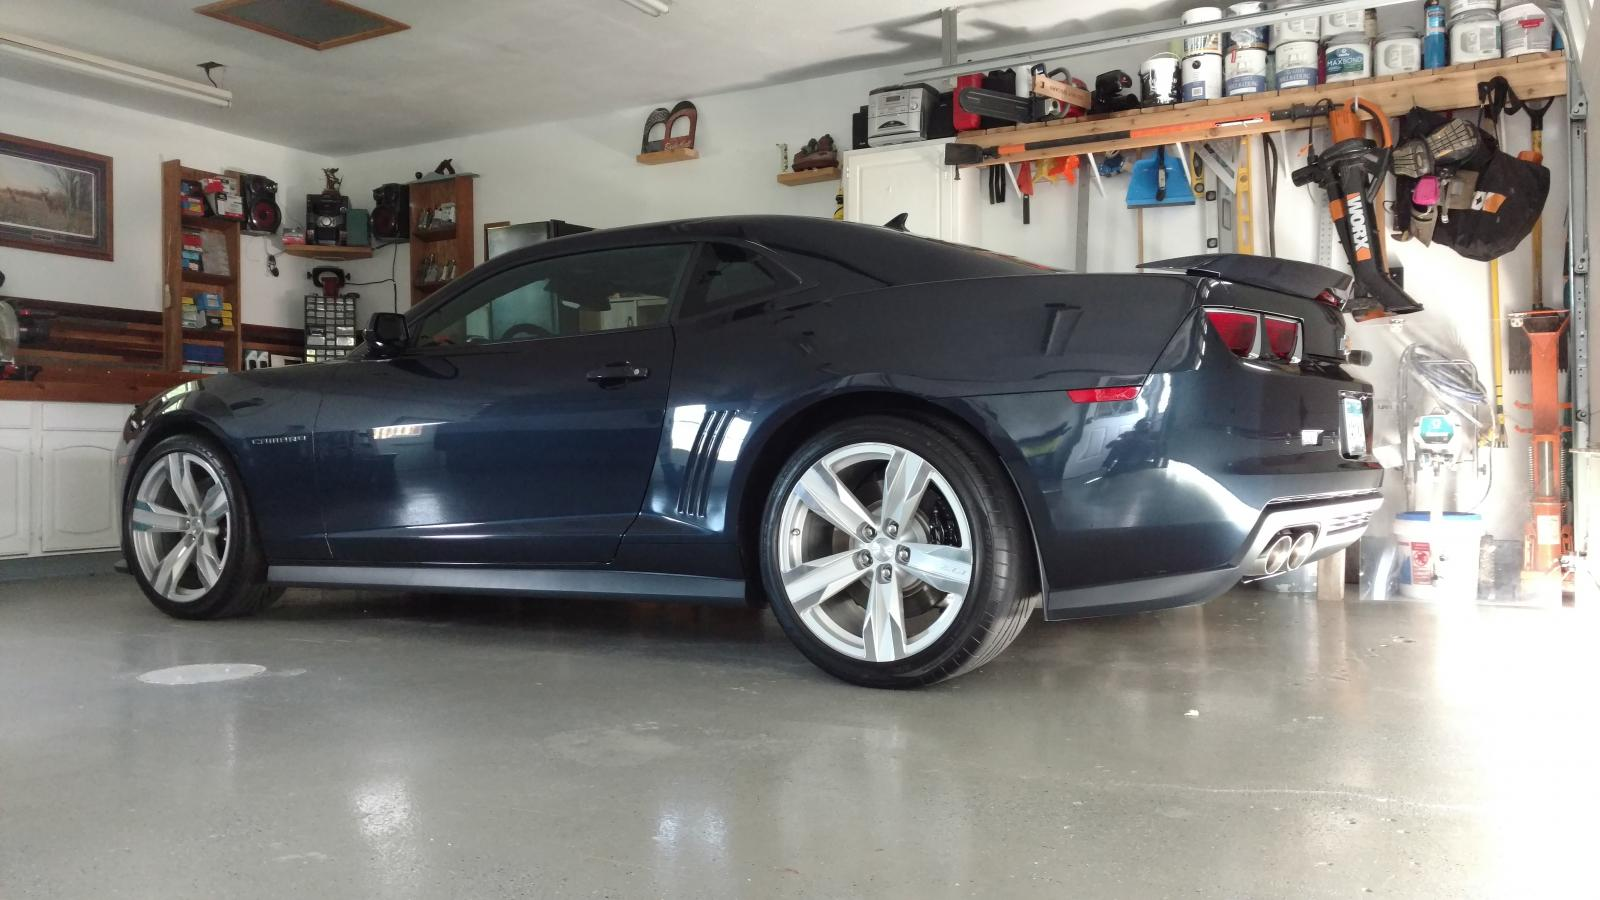 I want my ZL1 to WHINE! - Page 5 - Camaro5 Chevy Camaro ... 2013 Camaro Zl1 Supercharger Problems